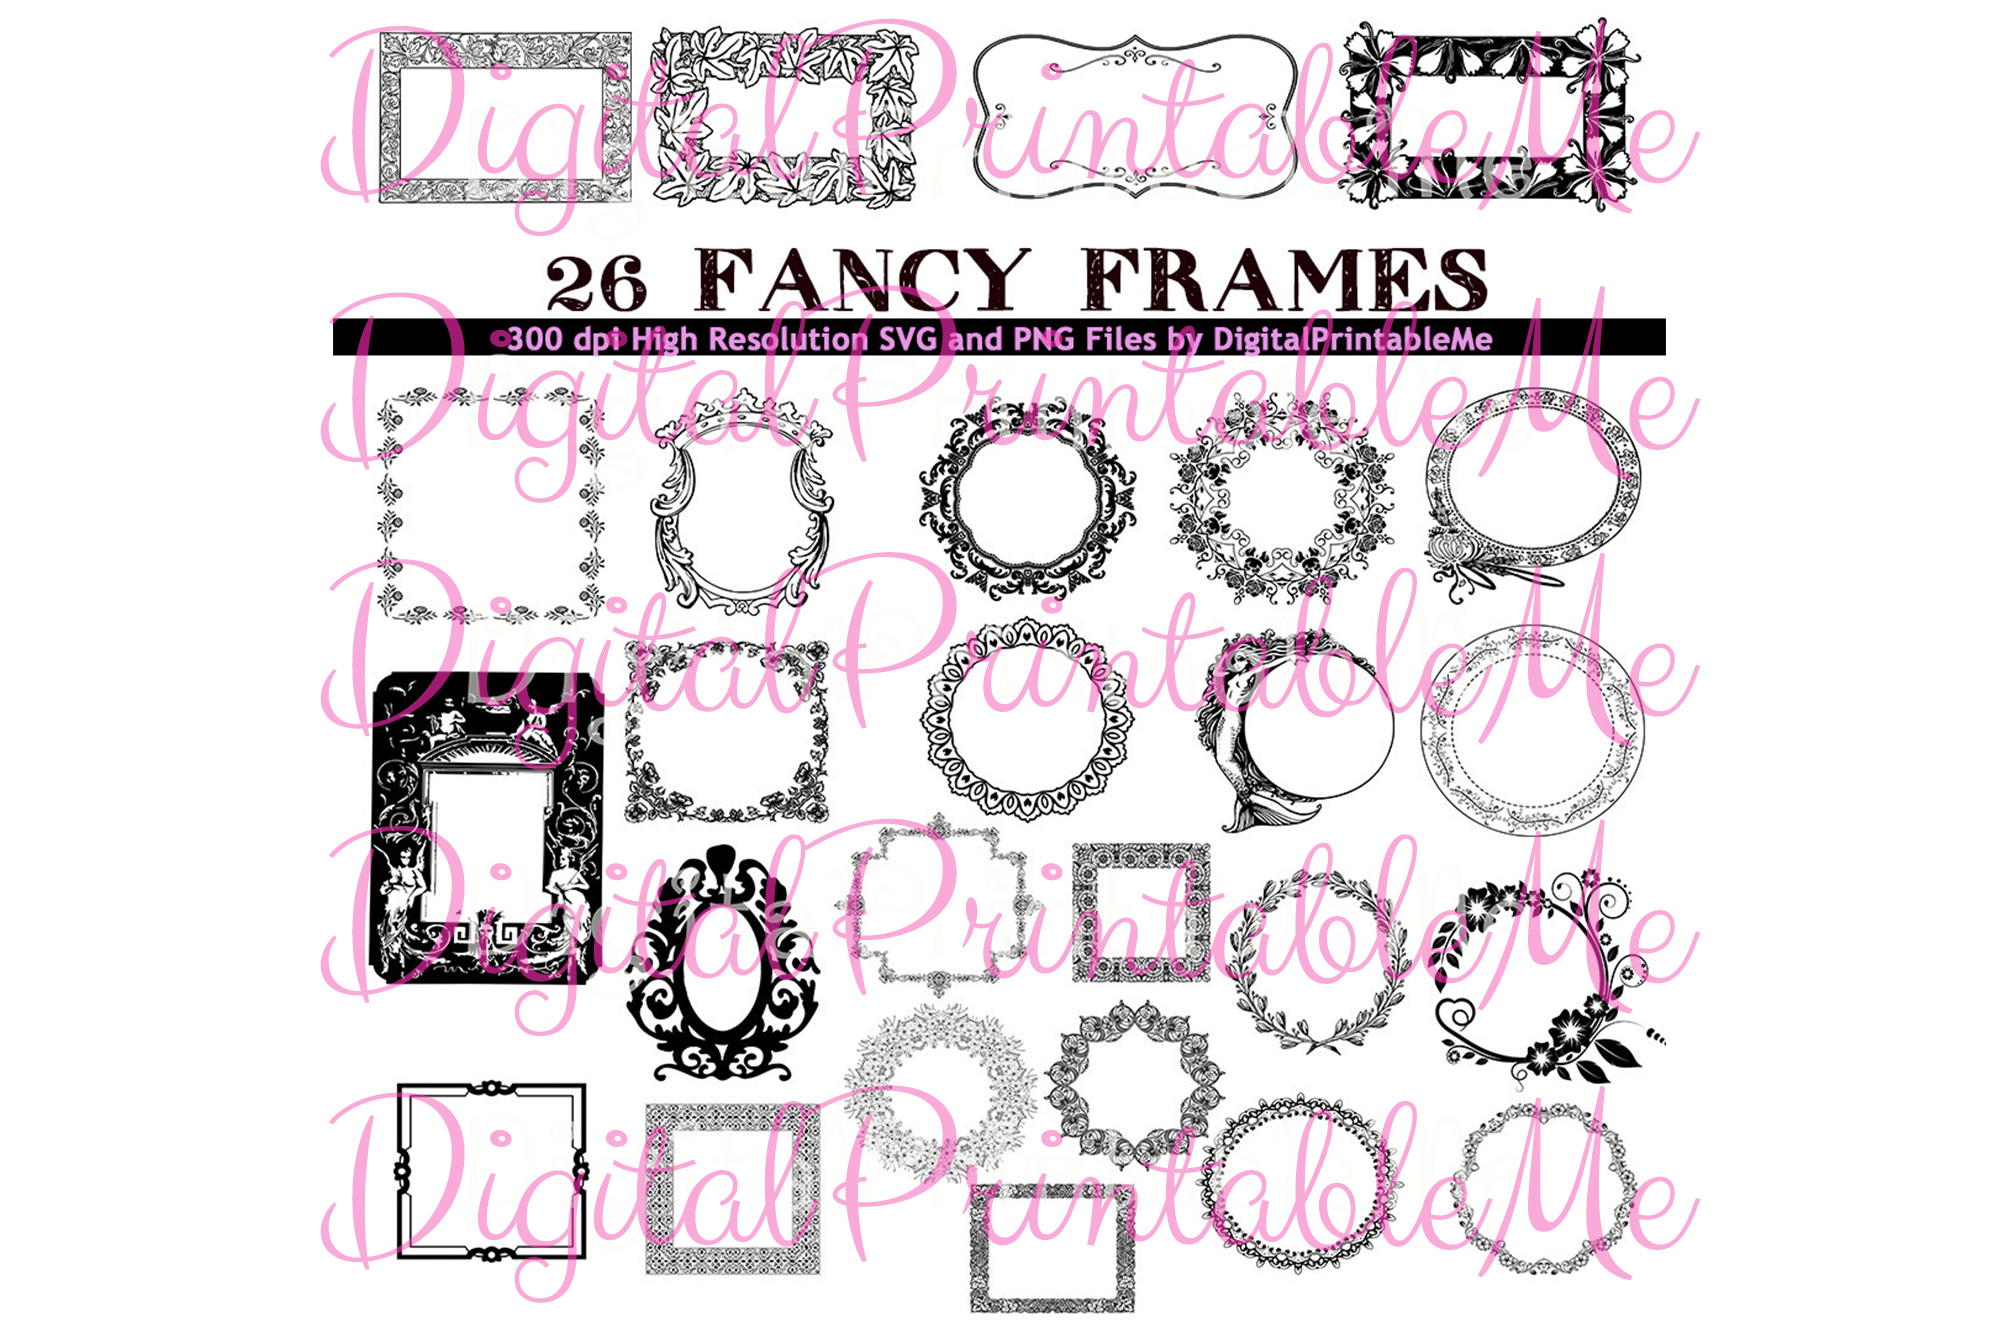 Download Free Frame Clip Art Set Art Deco Borders 26 Graphic By Digitalprintableme Creative Fabrica for Cricut Explore, Silhouette and other cutting machines.